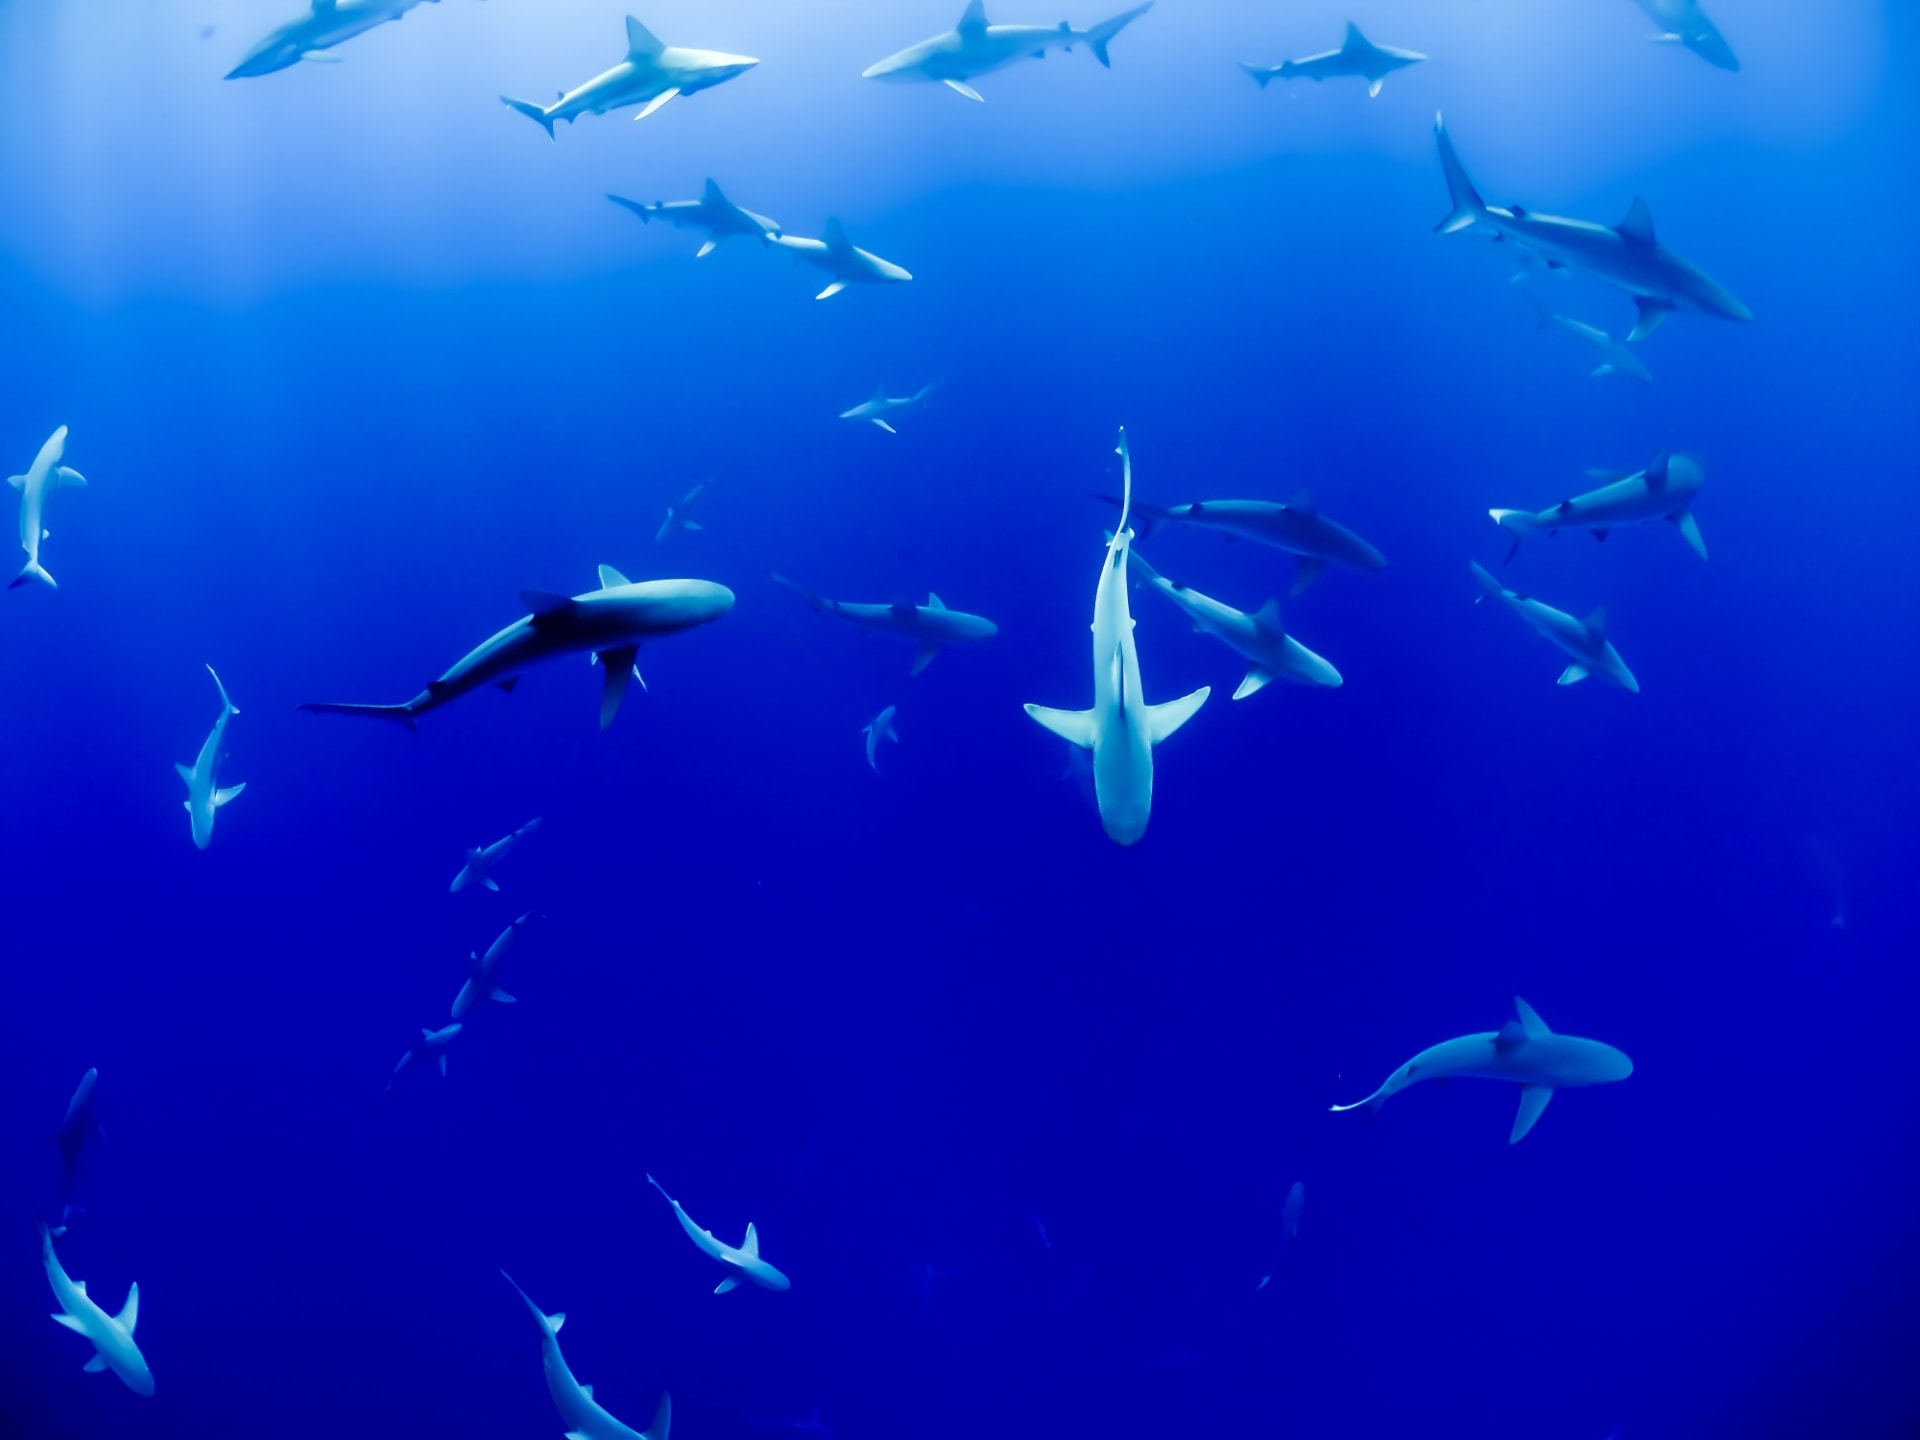 Underwater life showing sharks